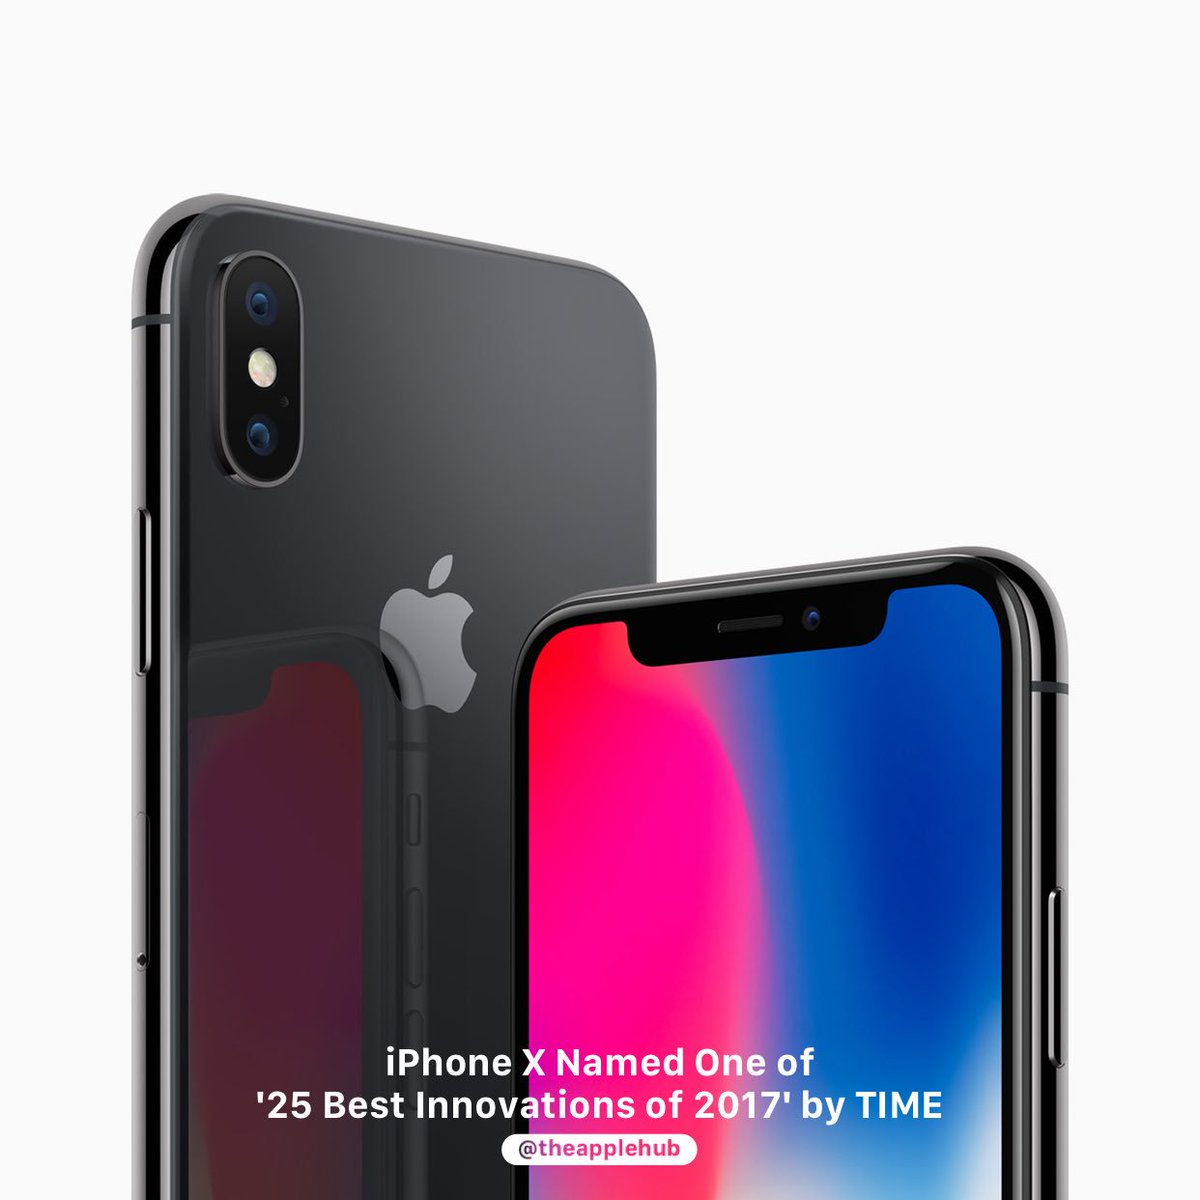 TIME magazine has named the iPhone X one of the '25 Best Inventions of 2017'.    #Apple #iPhone #iPhoneX #AppleHub<br>http://pic.twitter.com/vrbJfCX37A